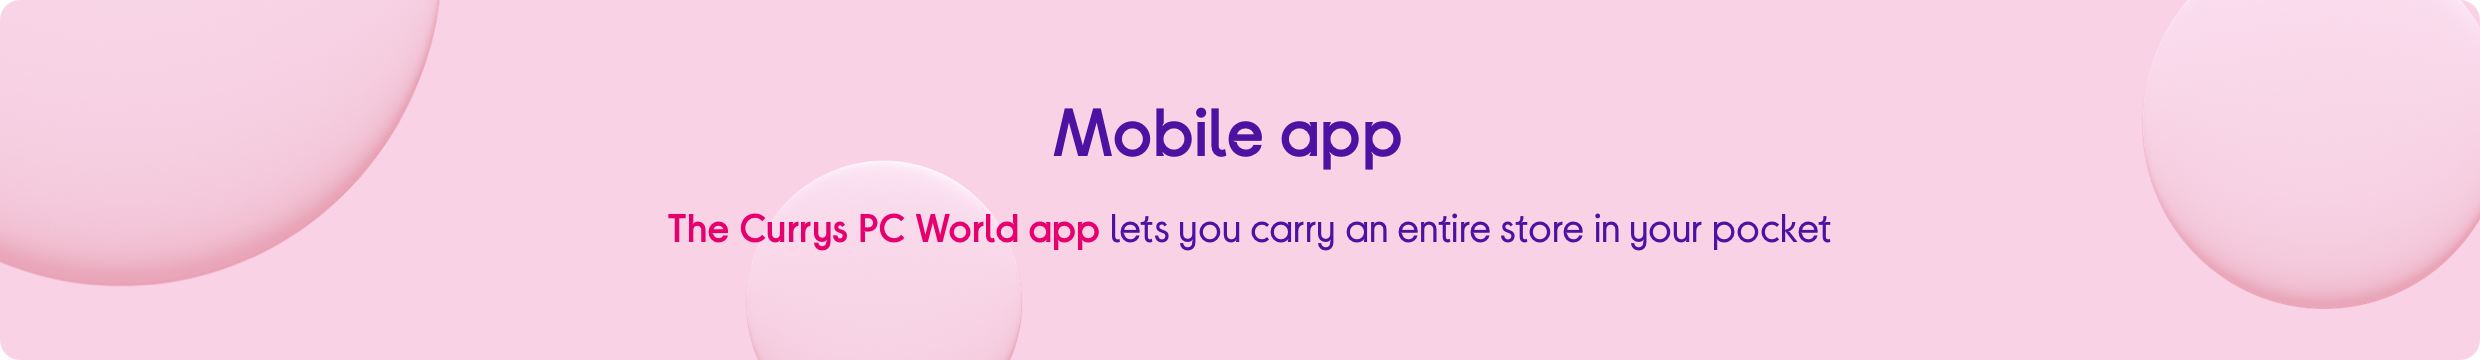 The Currys PC World app lets you carry an entire store in your pocket